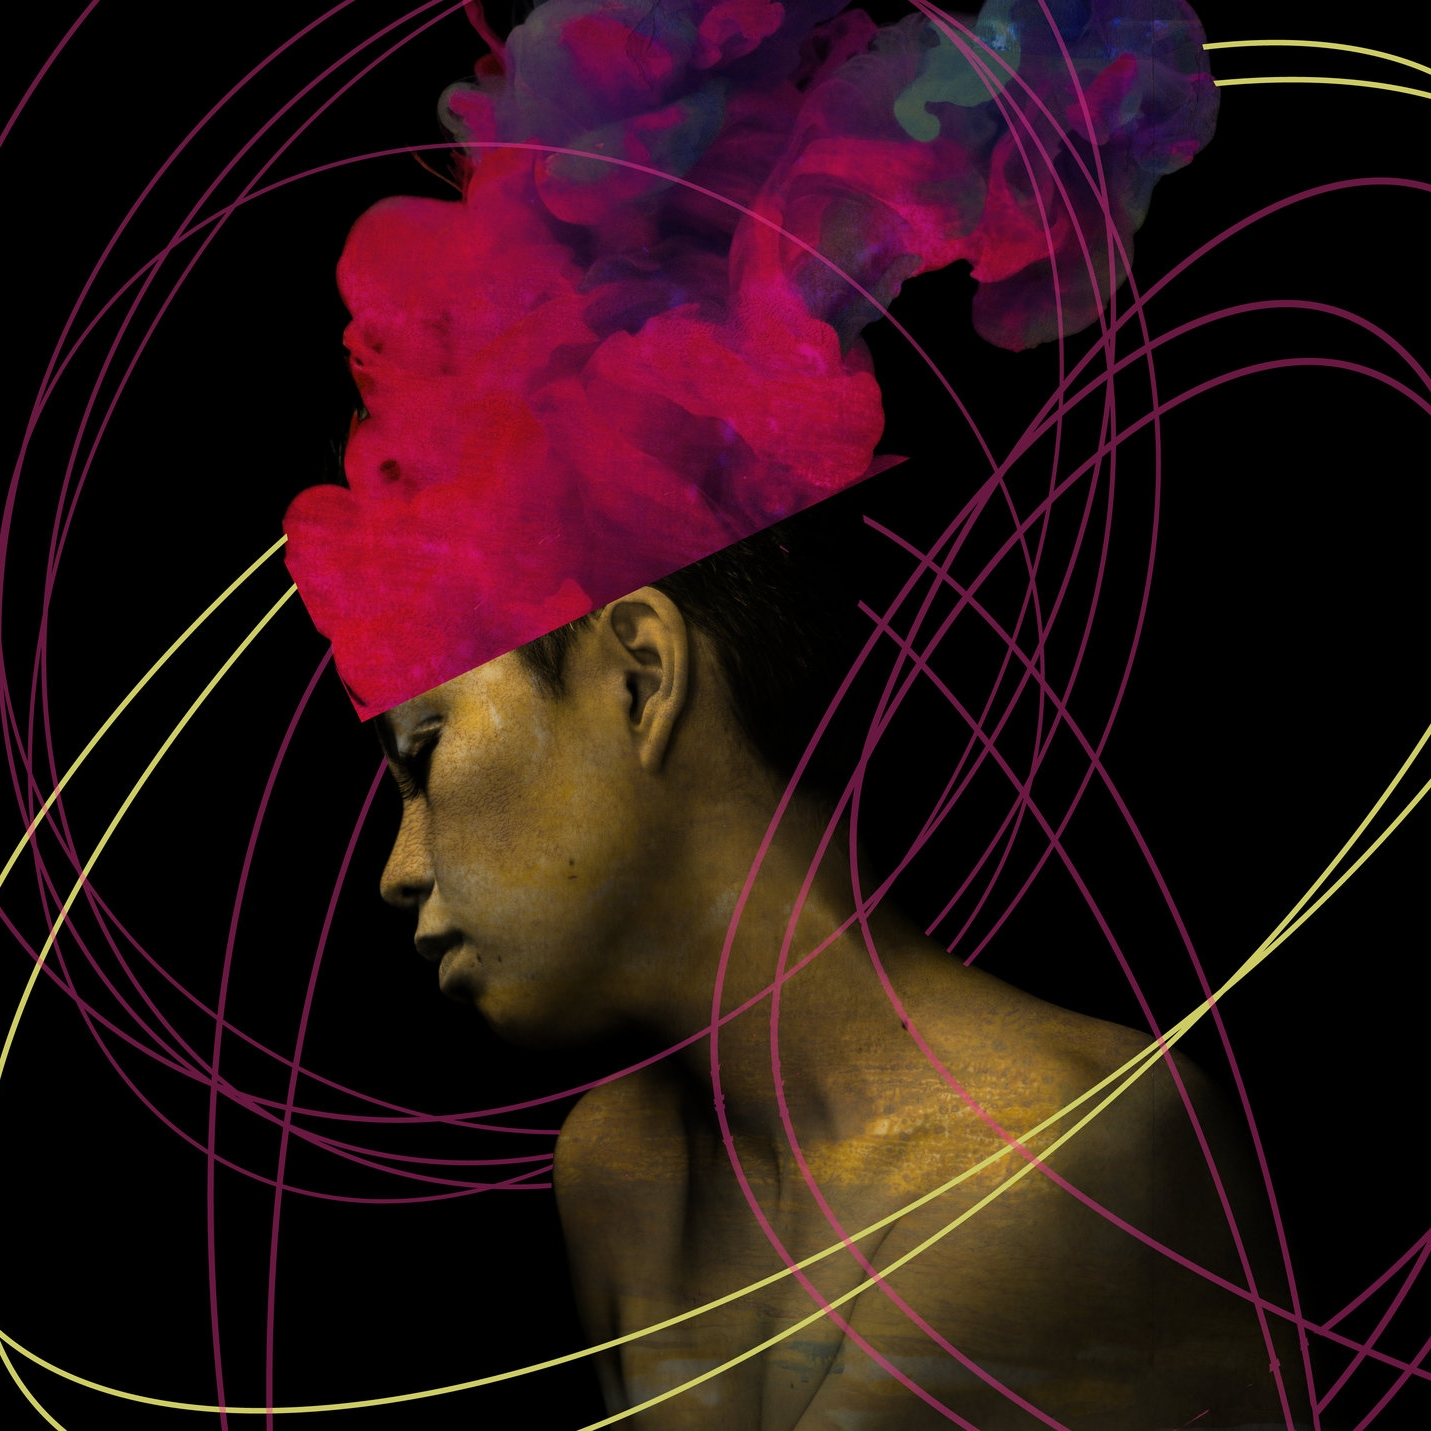 NoöSphere: Mindfulness in a Hyper-Connected World - Friday 3rd August 2018Join us for an hour-long journey through three immersive experiences, inviting you to breathe, embody and visualise mindfulness.Dates:Thu 20 - Sun 23 Sep Venue: The Old Market, Brighton Tickets: £1516-25 tickets: £5 (limited availability)